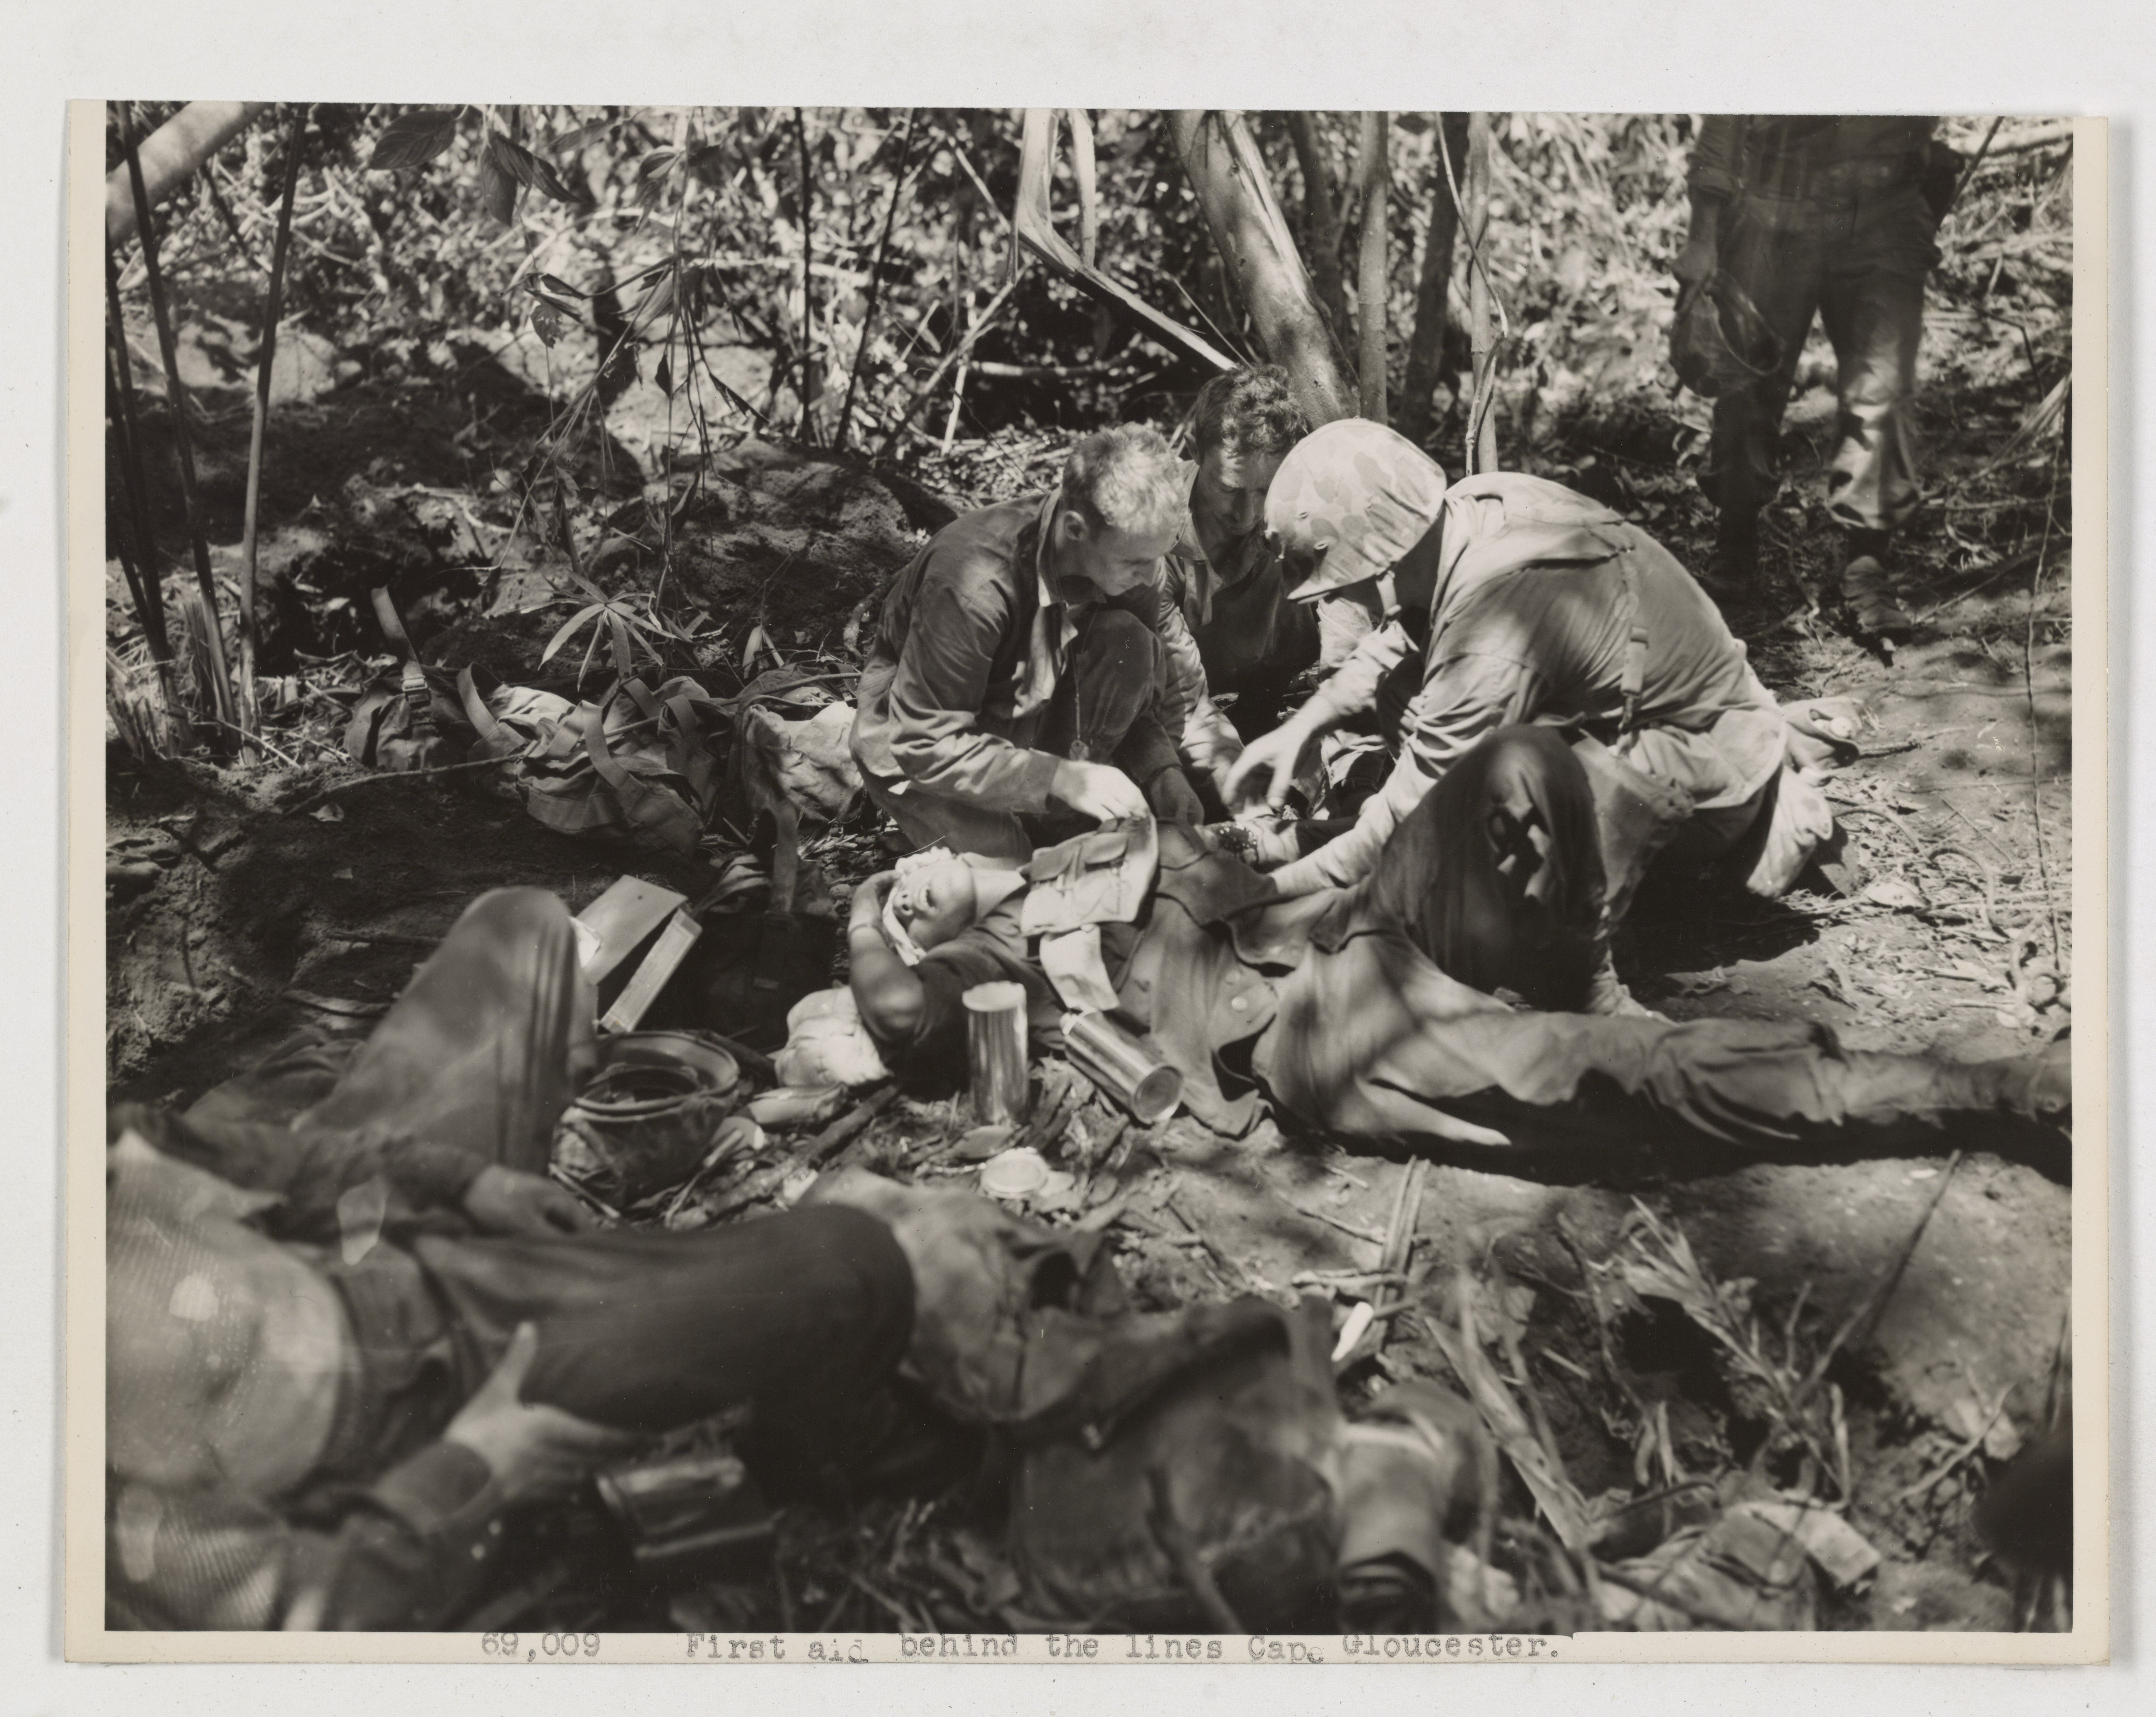 World War II – Wounded